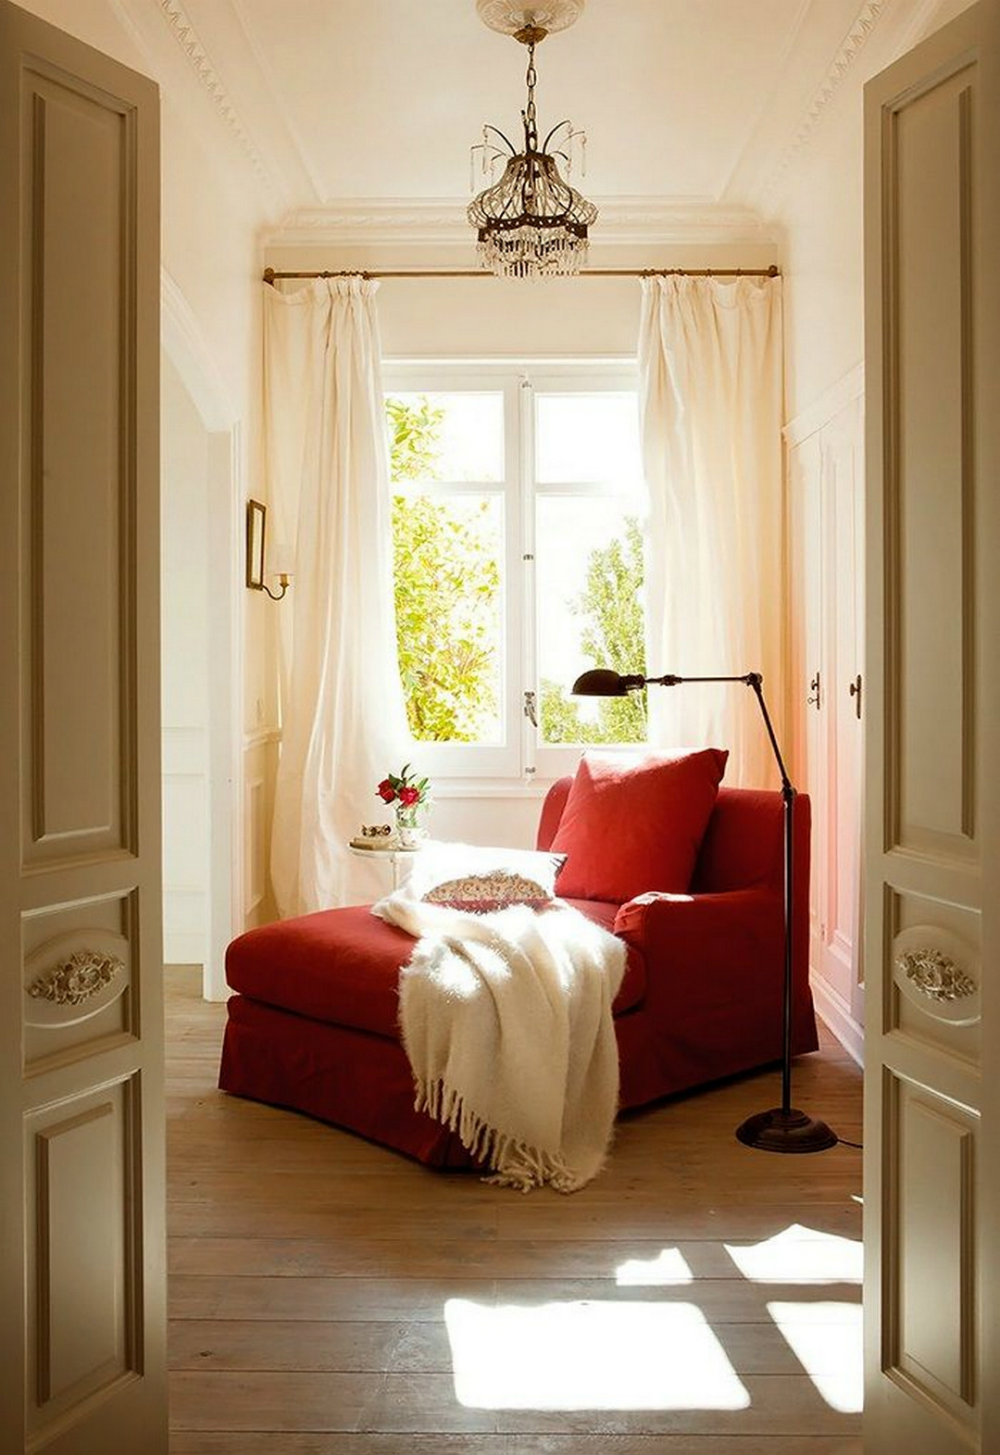 Stunning Interiors in the Fall Color Trends 06 Fall Color Trends Stunning Interiors in the 2018 Fall Color Trends Stunning Interiors in the Fall Color Trends 06